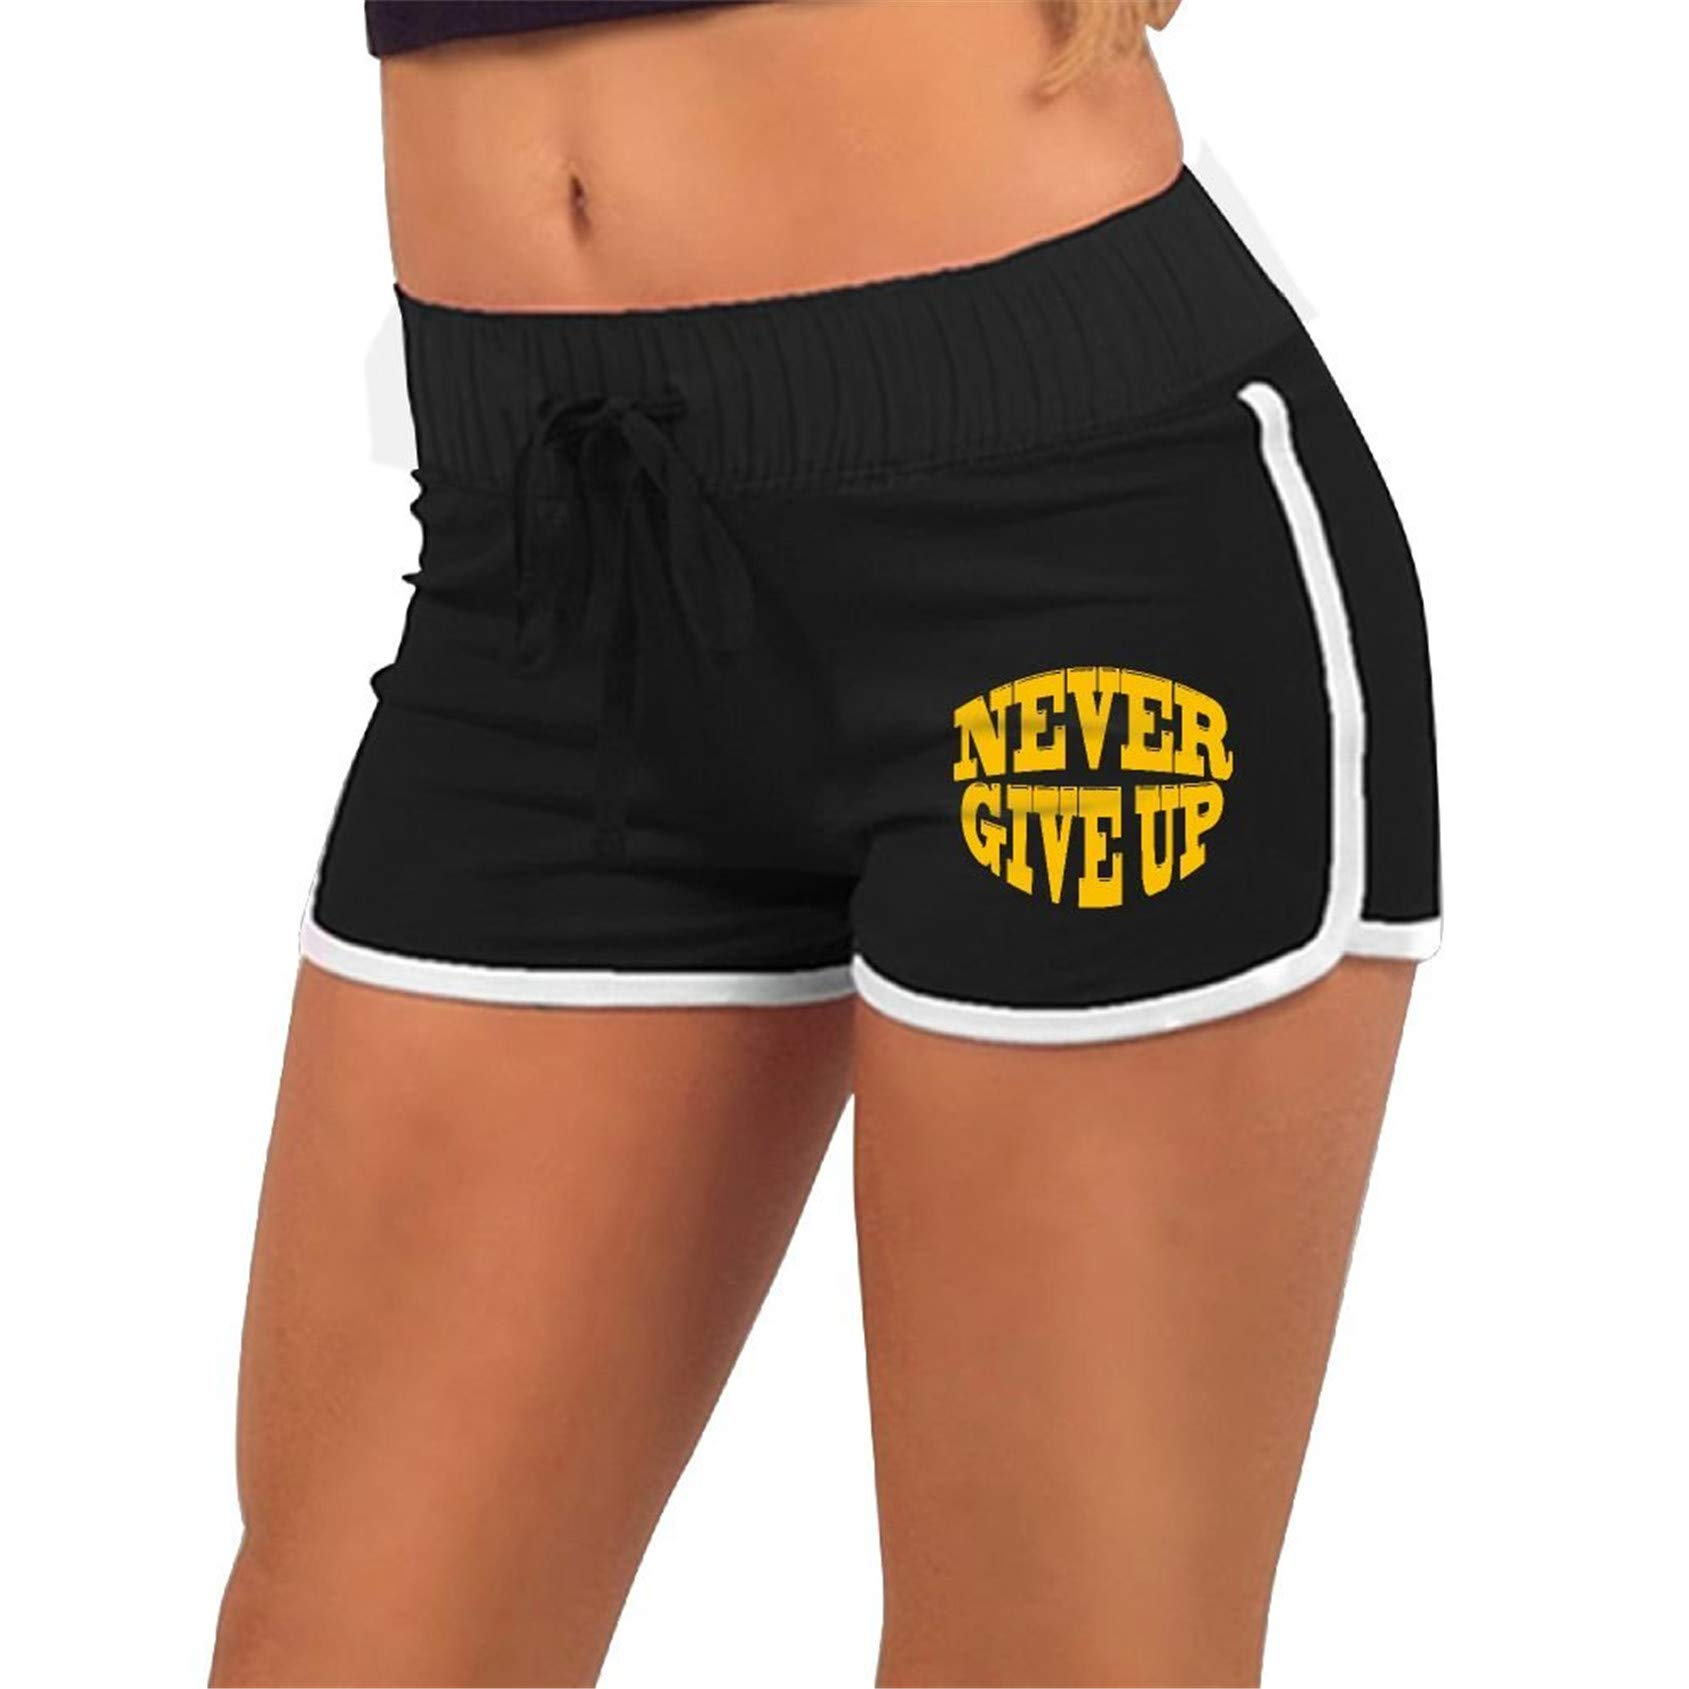 Never GIVE up,Gym Fitness,Sport Short Pants with,Athletic Elastic Waist Womens Sports Shorts